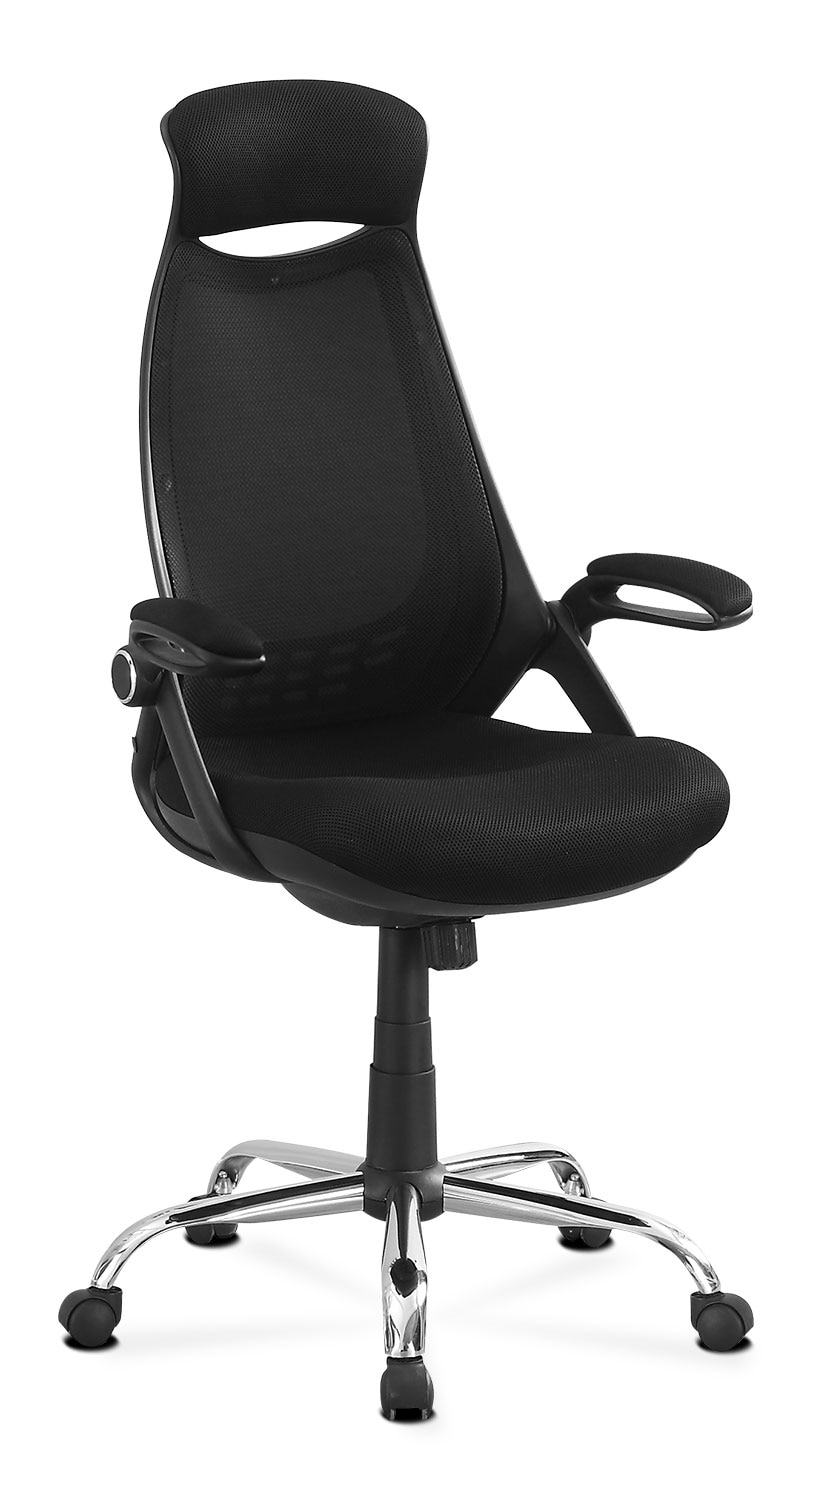 Home Office Furniture - Online Only - Astra Office Chair - Black